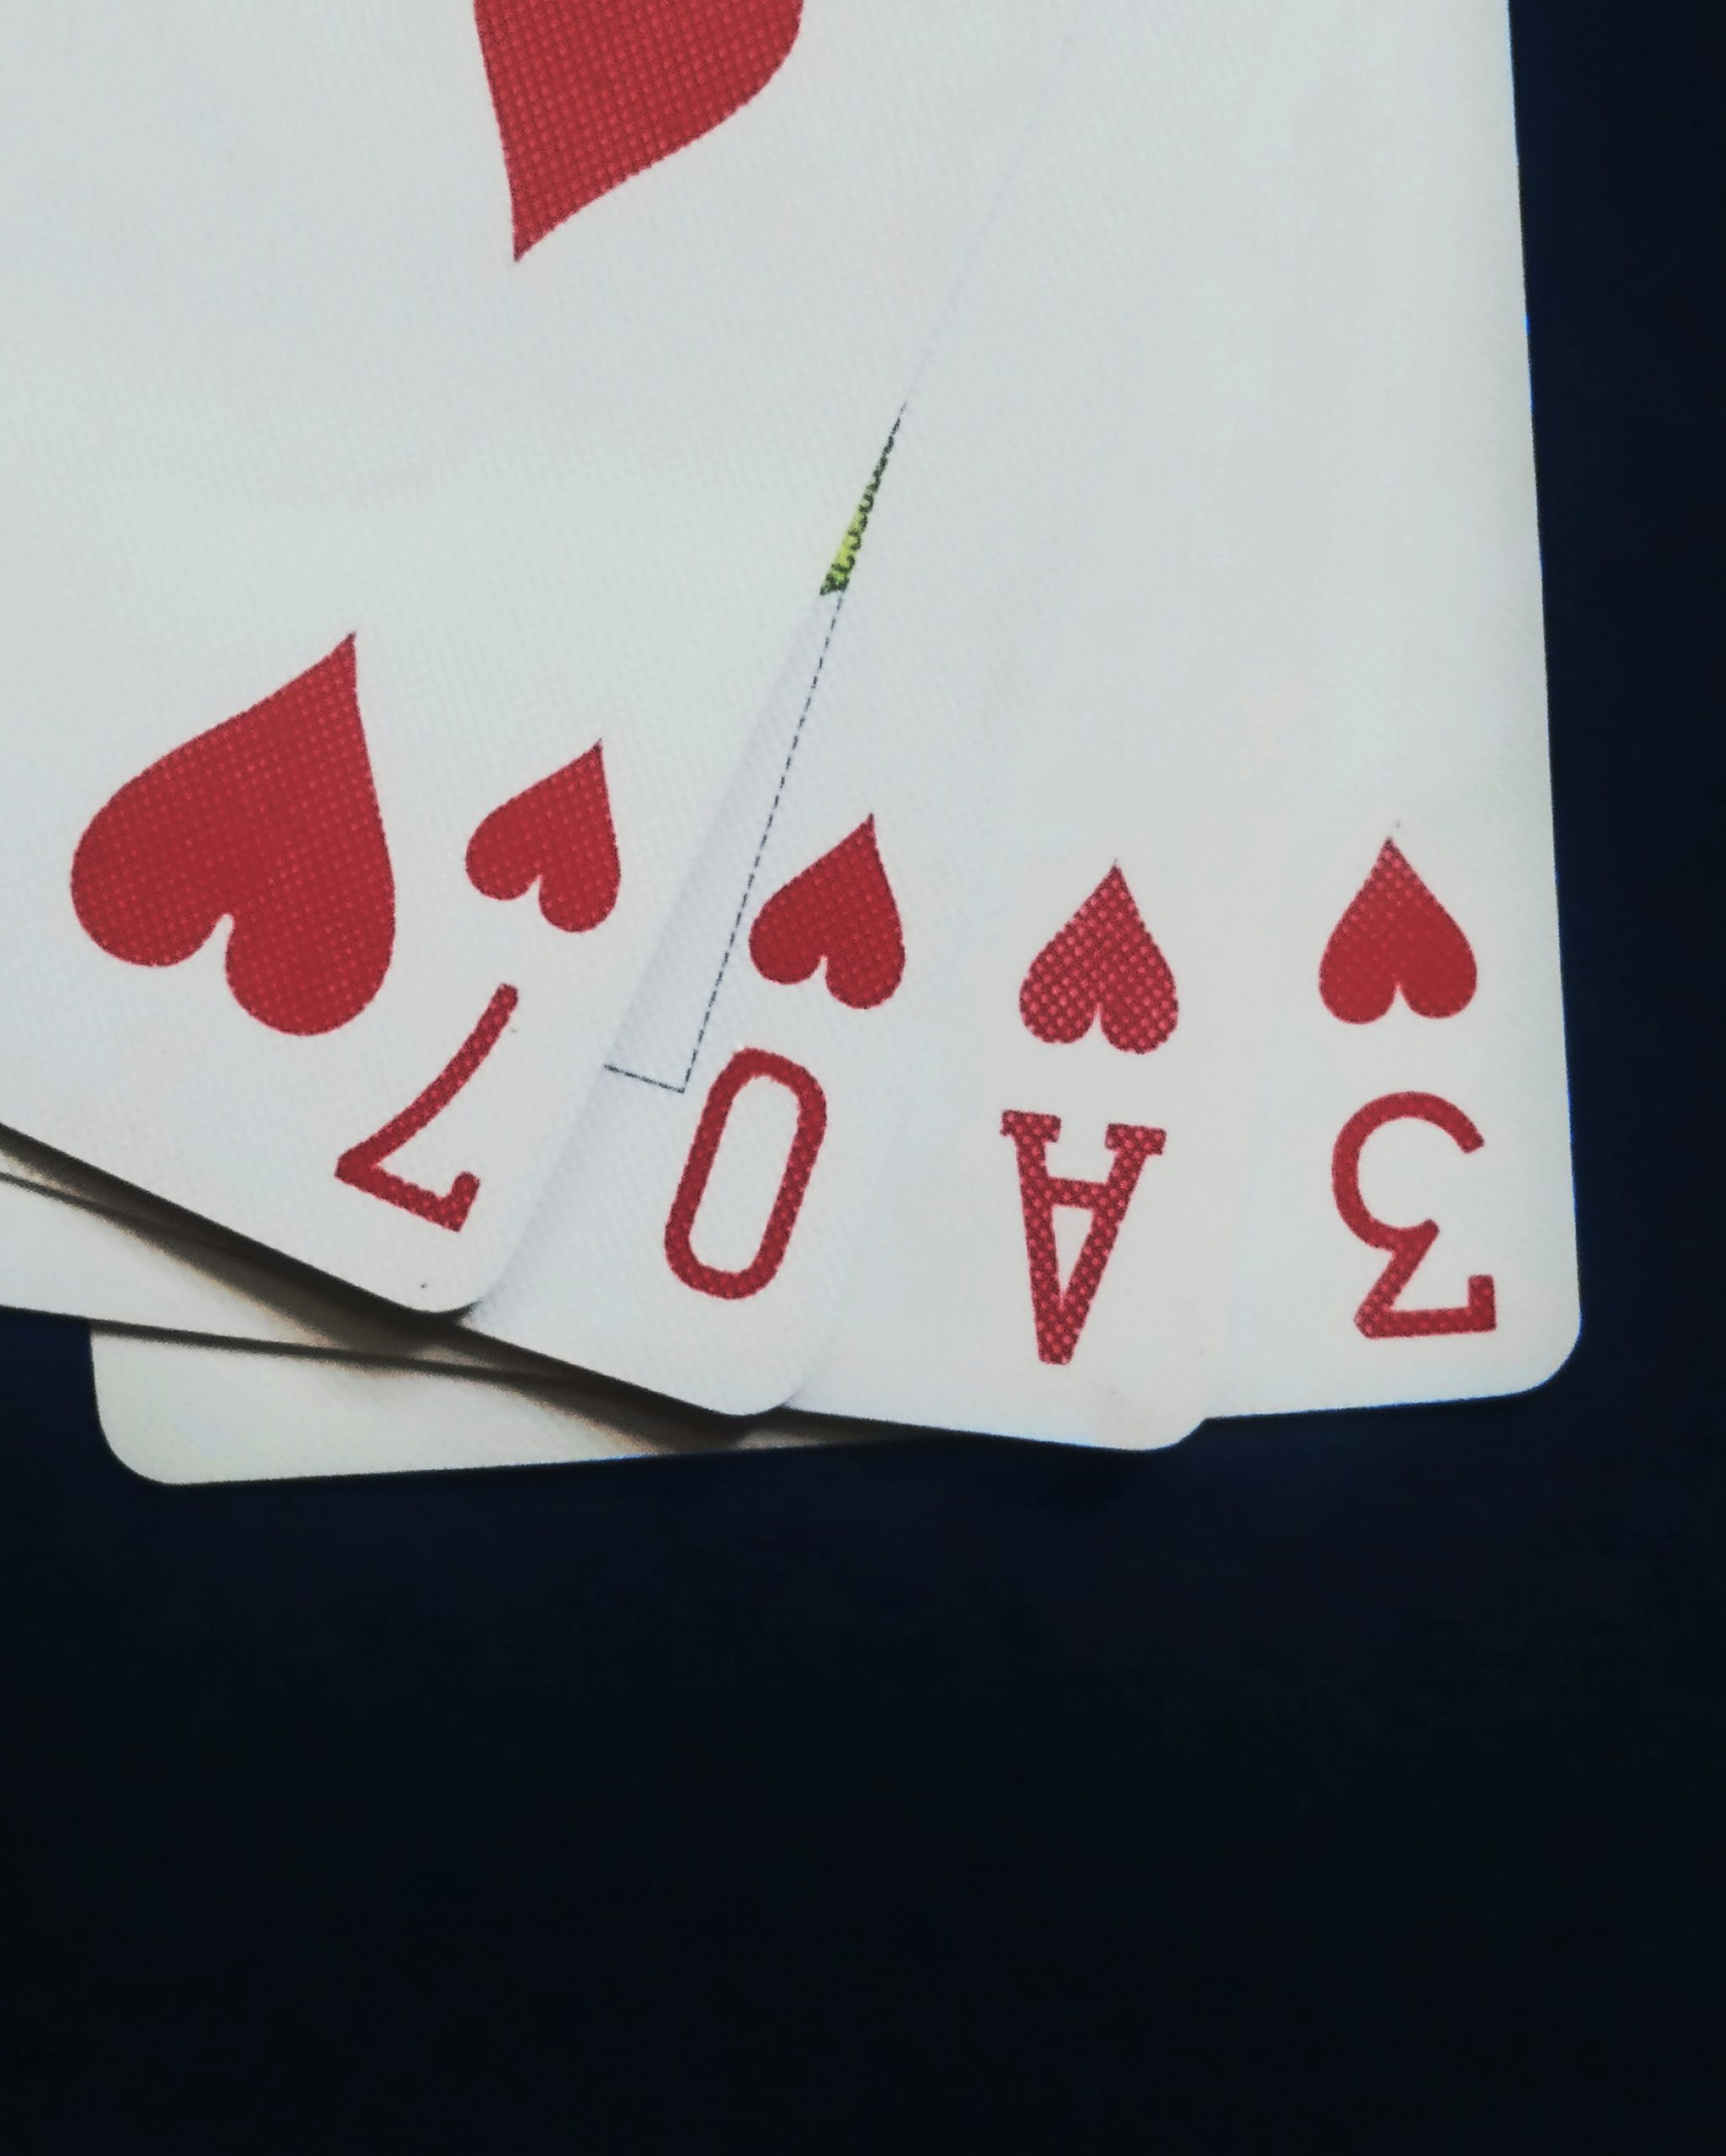 Cards of hearts